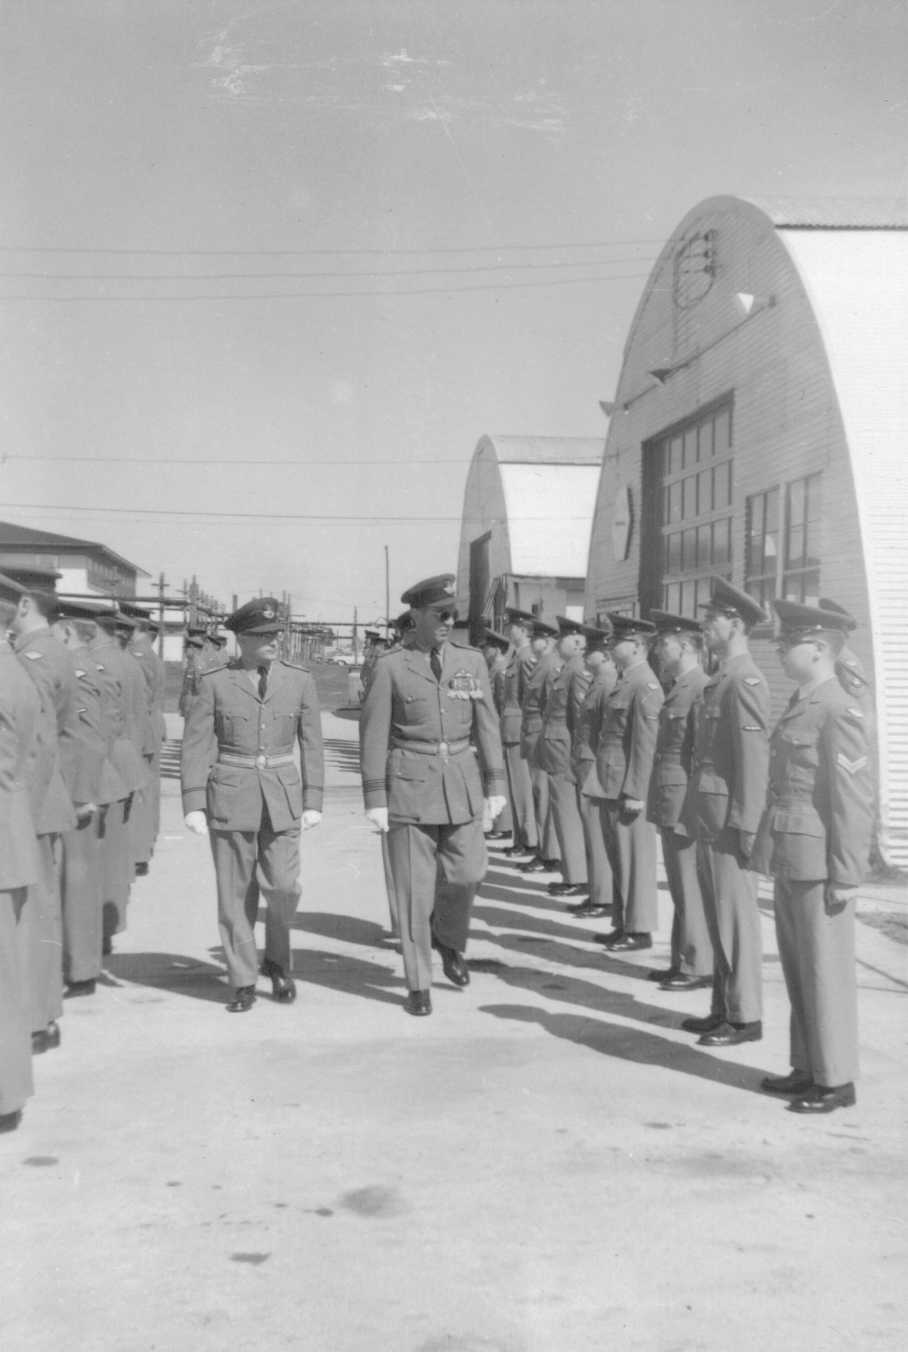 Photo: Ralph MacWilliam Inspects Airmen prior to Command Transfer